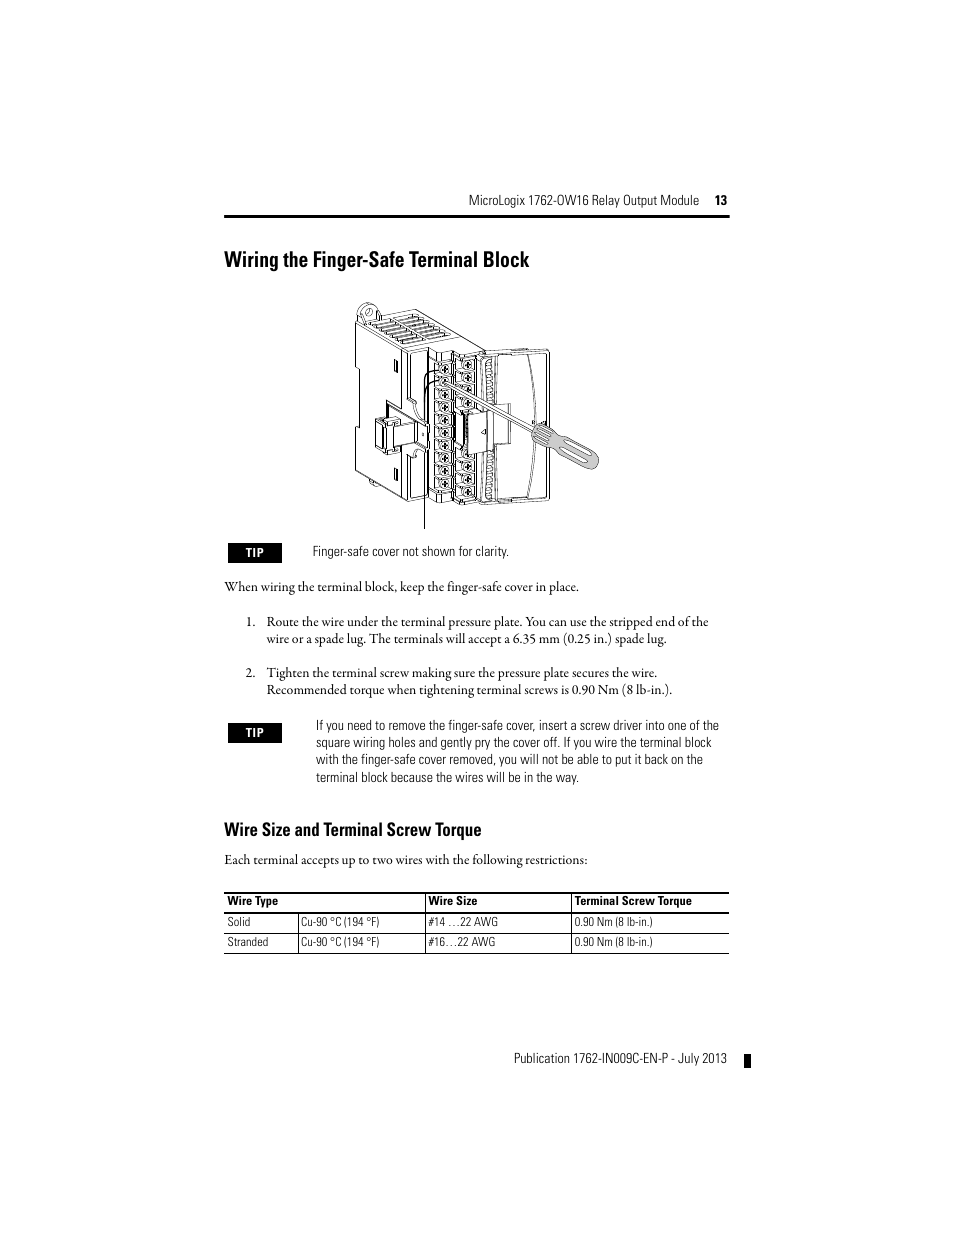 medium resolution of wire size and terminal screw torque wiring the finger safe terminal block rockwell automation 1762 ow16 relay output module user manual page 13 20